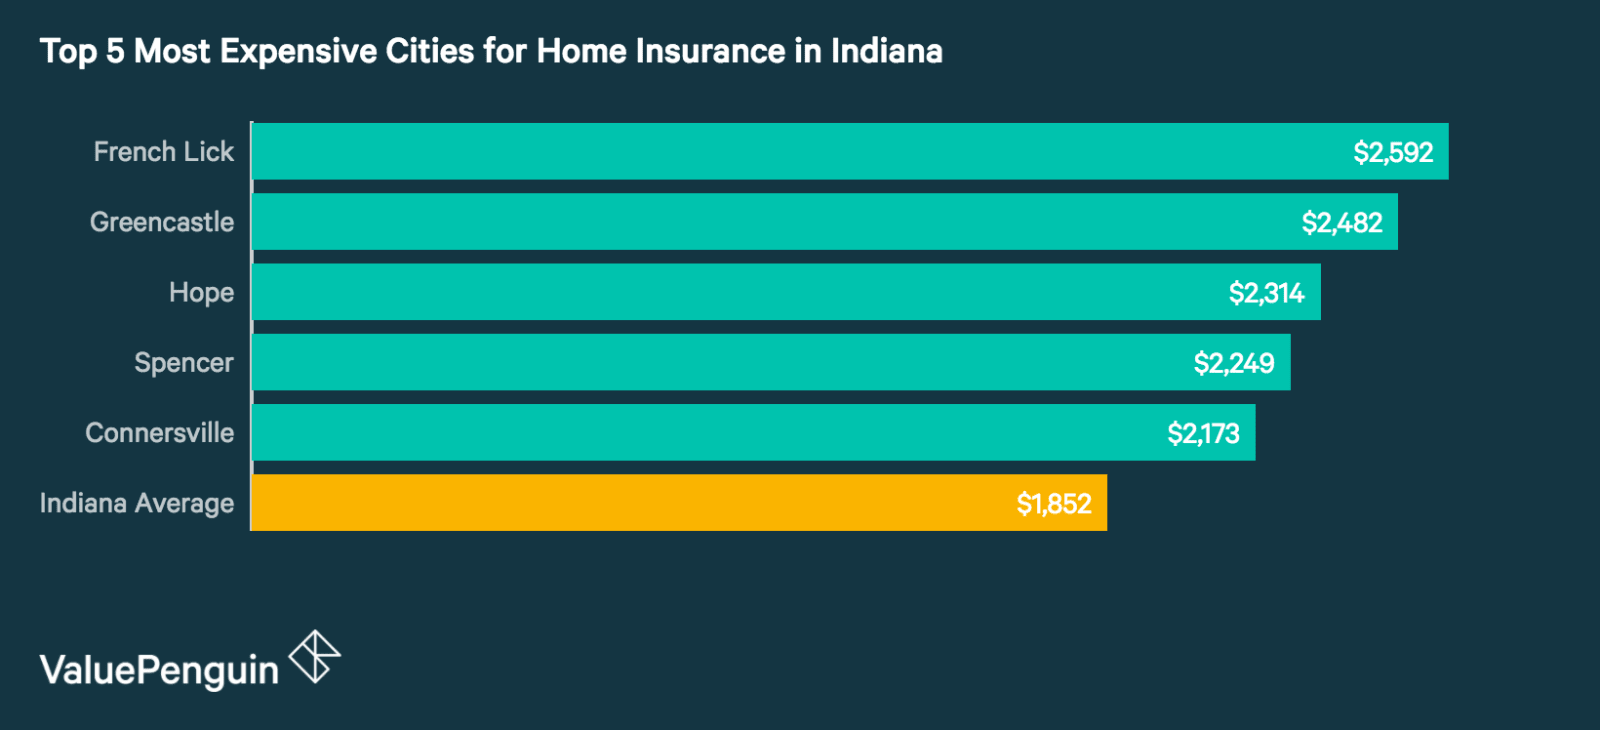 Top 5 Most Expensive Cities in Indiana for Homeowners Insurance